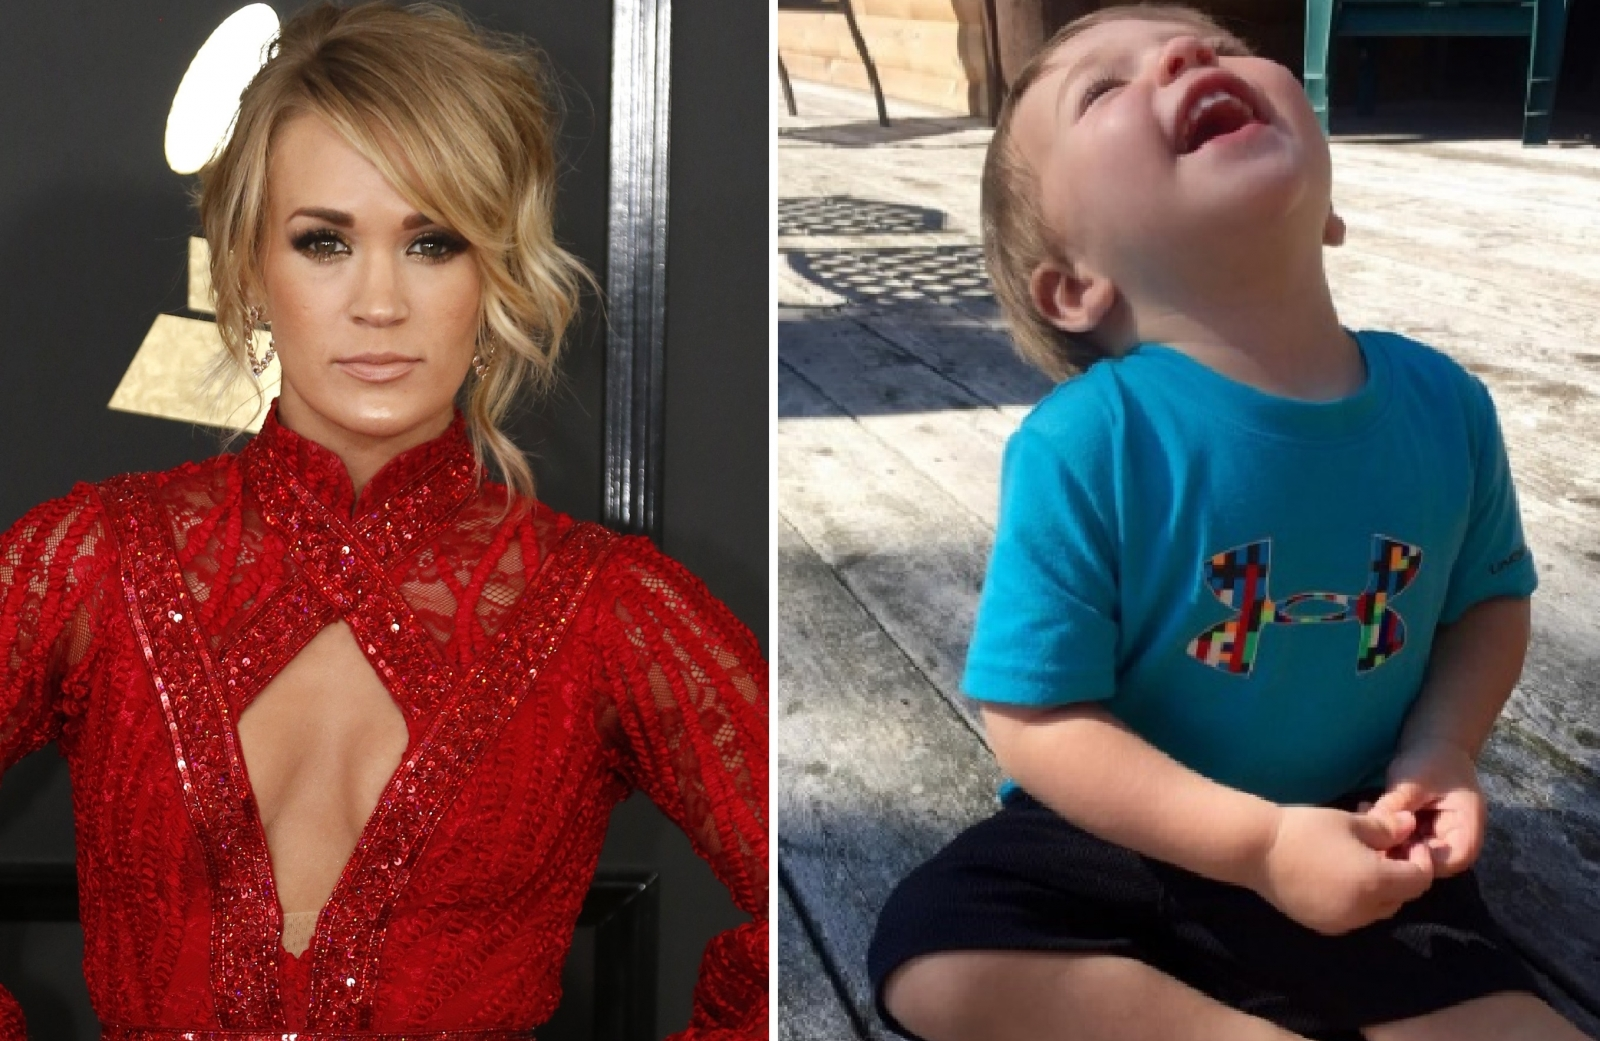 Carrie Underwood son Isaiah Fisher